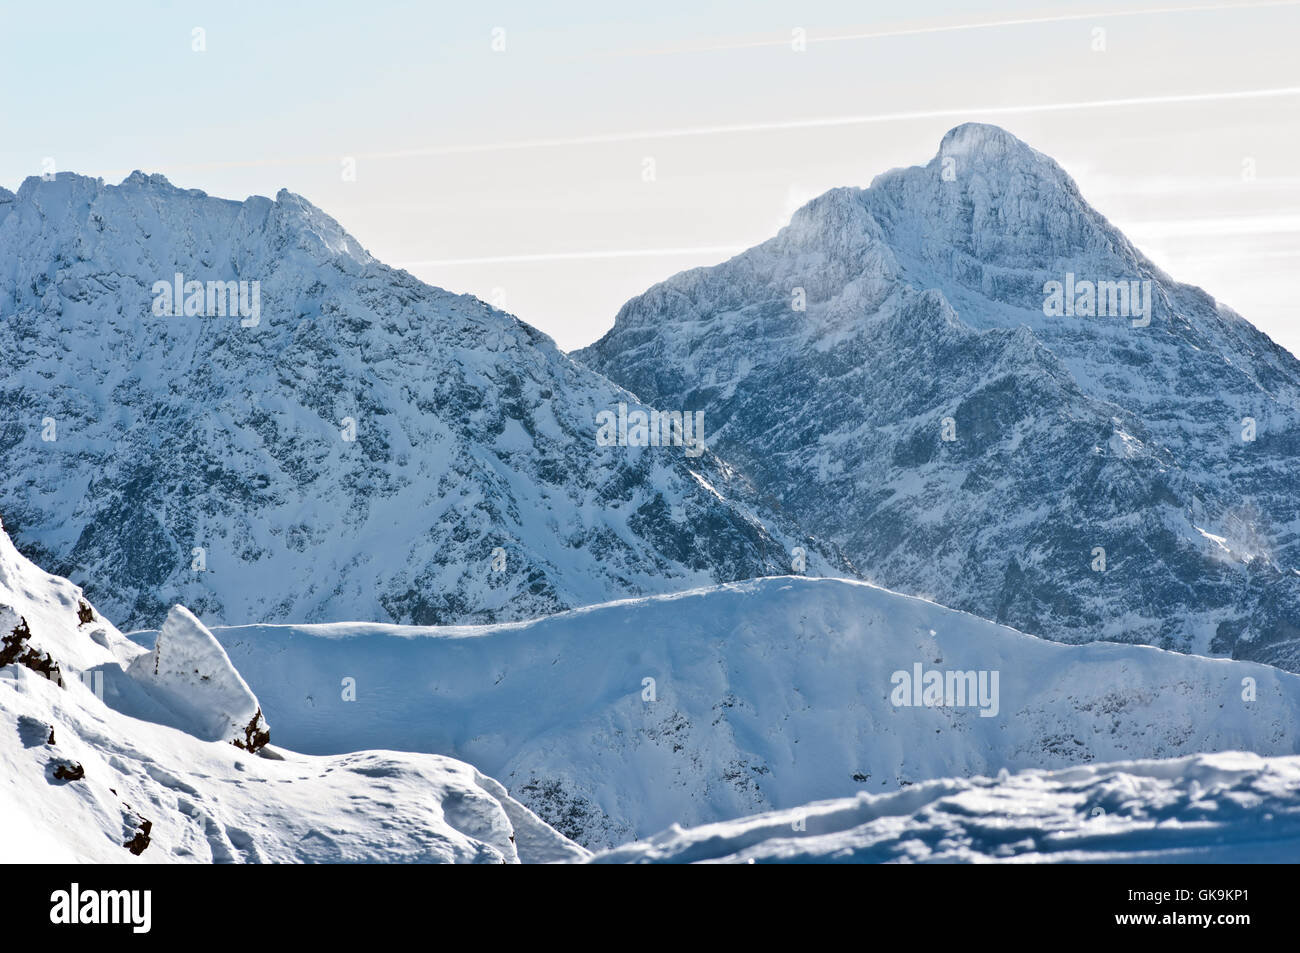 tatra mountains in winter,winter landscape in the mountains - Stock Image